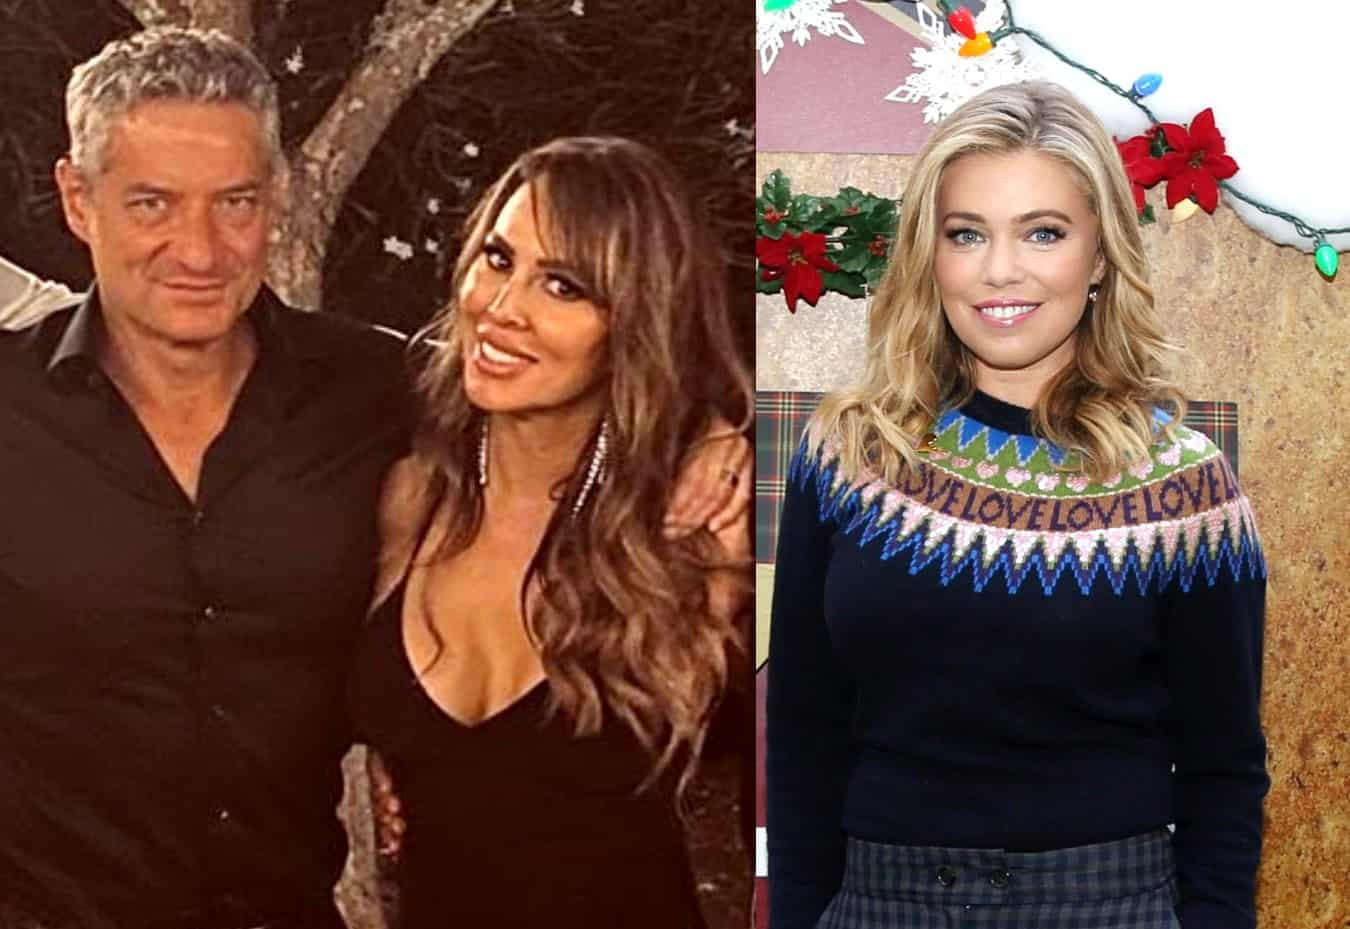 RHOC's Kelly Dodd Slams Husband Rick Leventhal's Ex Lauren Sivan on Instagram Less Than Two Weeks After Their Wedding, See What She Said in Comment on Photo Shared of Rick's Daughter